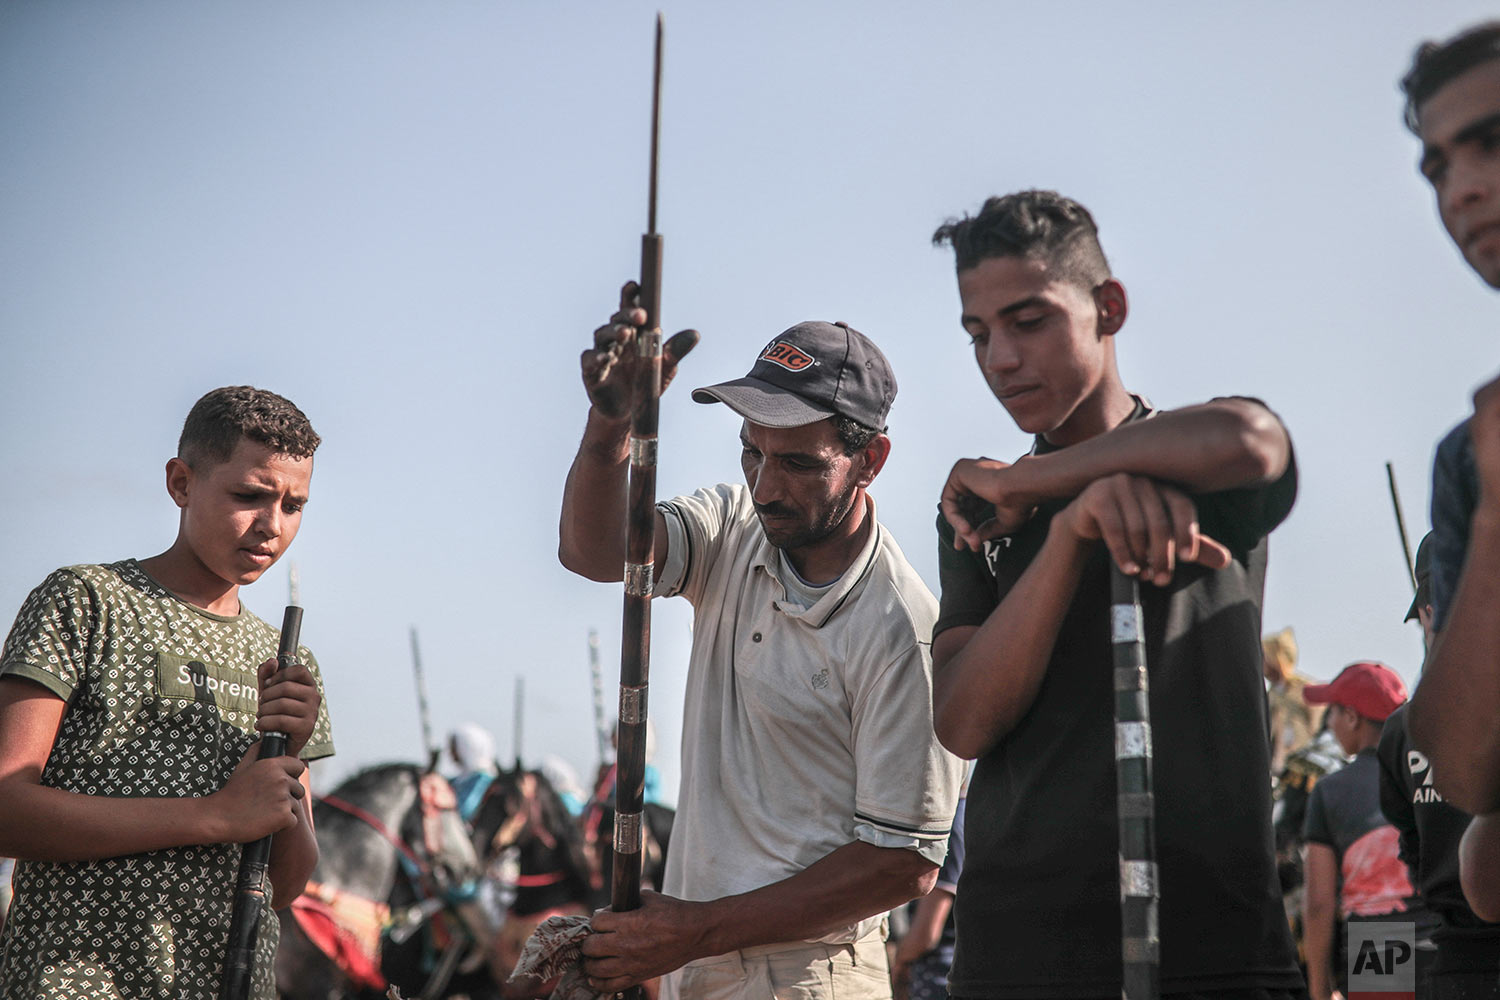 A man helps prepare rifles before being loaded with gunpowder to be used in Tabourida in the coastal town of El Jadida, Morocco, July 25, 2019. (AP Photo/Mosa'ab Elshamy)